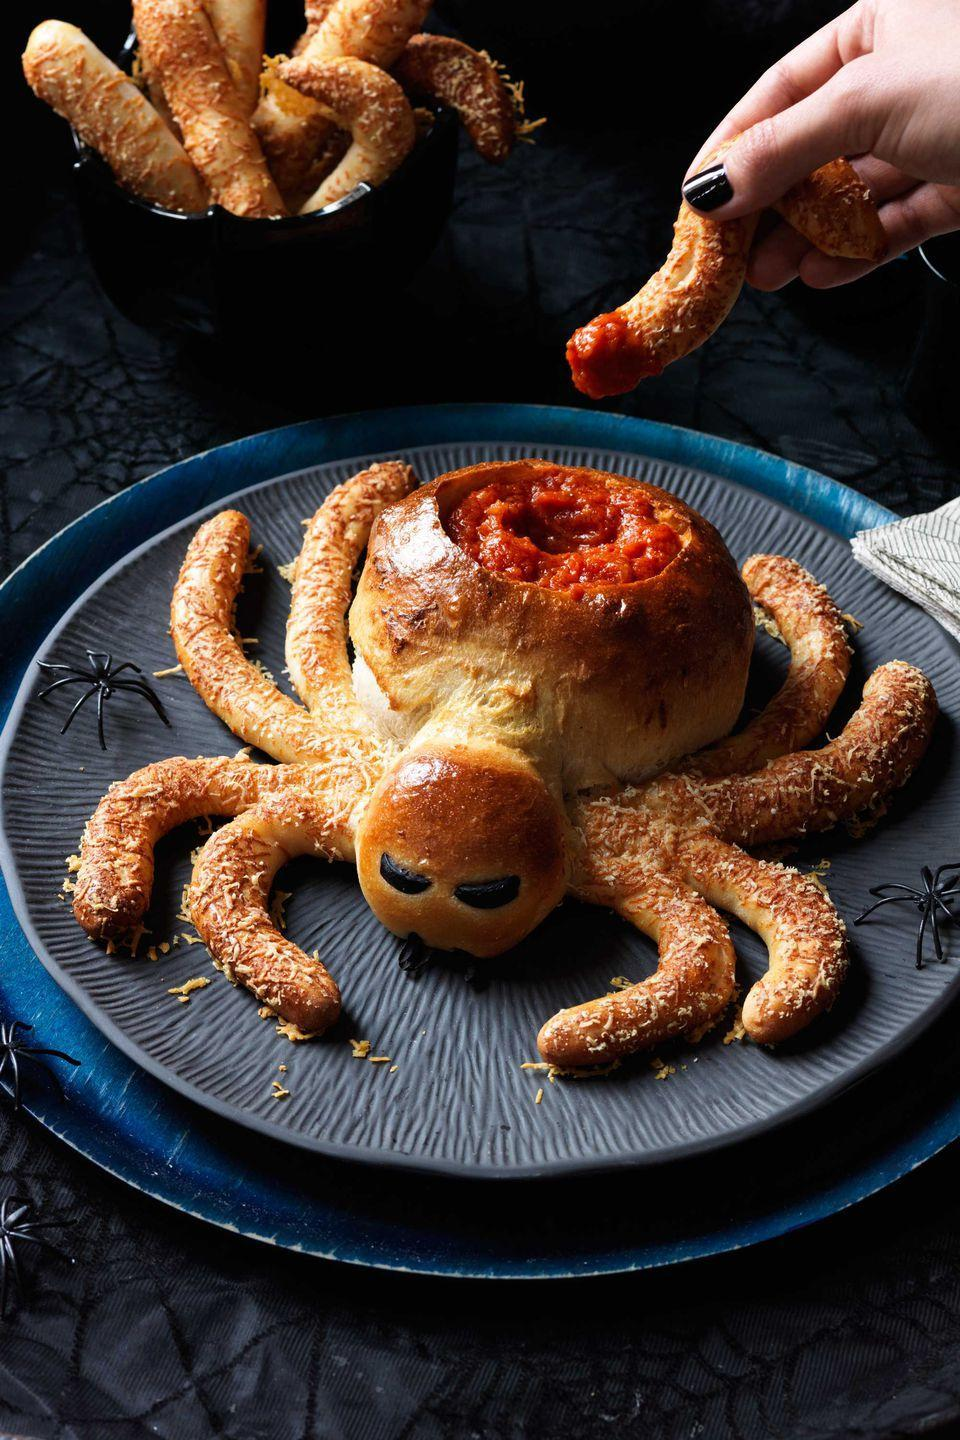 "<p>Spin a web of doughy deliciousness with this party-perfect <a href=""https://www.womansday.com/food-recipes/g2574/easy-halloween-appetizers/"" rel=""nofollow noopener"" target=""_blank"" data-ylk=""slk:Halloween appetizer"" class=""link rapid-noclick-resp"">Halloween appetizer</a>. If you can't find pizza dough at your supermarket, try a local pizza parlor, which will likely sell you a fresh ball. For extra effect, sprinkle the legs with poppy seeds, in addition to Parmesan.<br></p><p><strong><a href=""https://www.womansday.com/food-recipes/food-drinks/recipes/a11906/saucy-spider-hairy-leg-sticks-recipe-123433/"" rel=""nofollow noopener"" target=""_blank"" data-ylk=""slk:Get the recipe."" class=""link rapid-noclick-resp"">Get the recipe.</a></strong></p>"